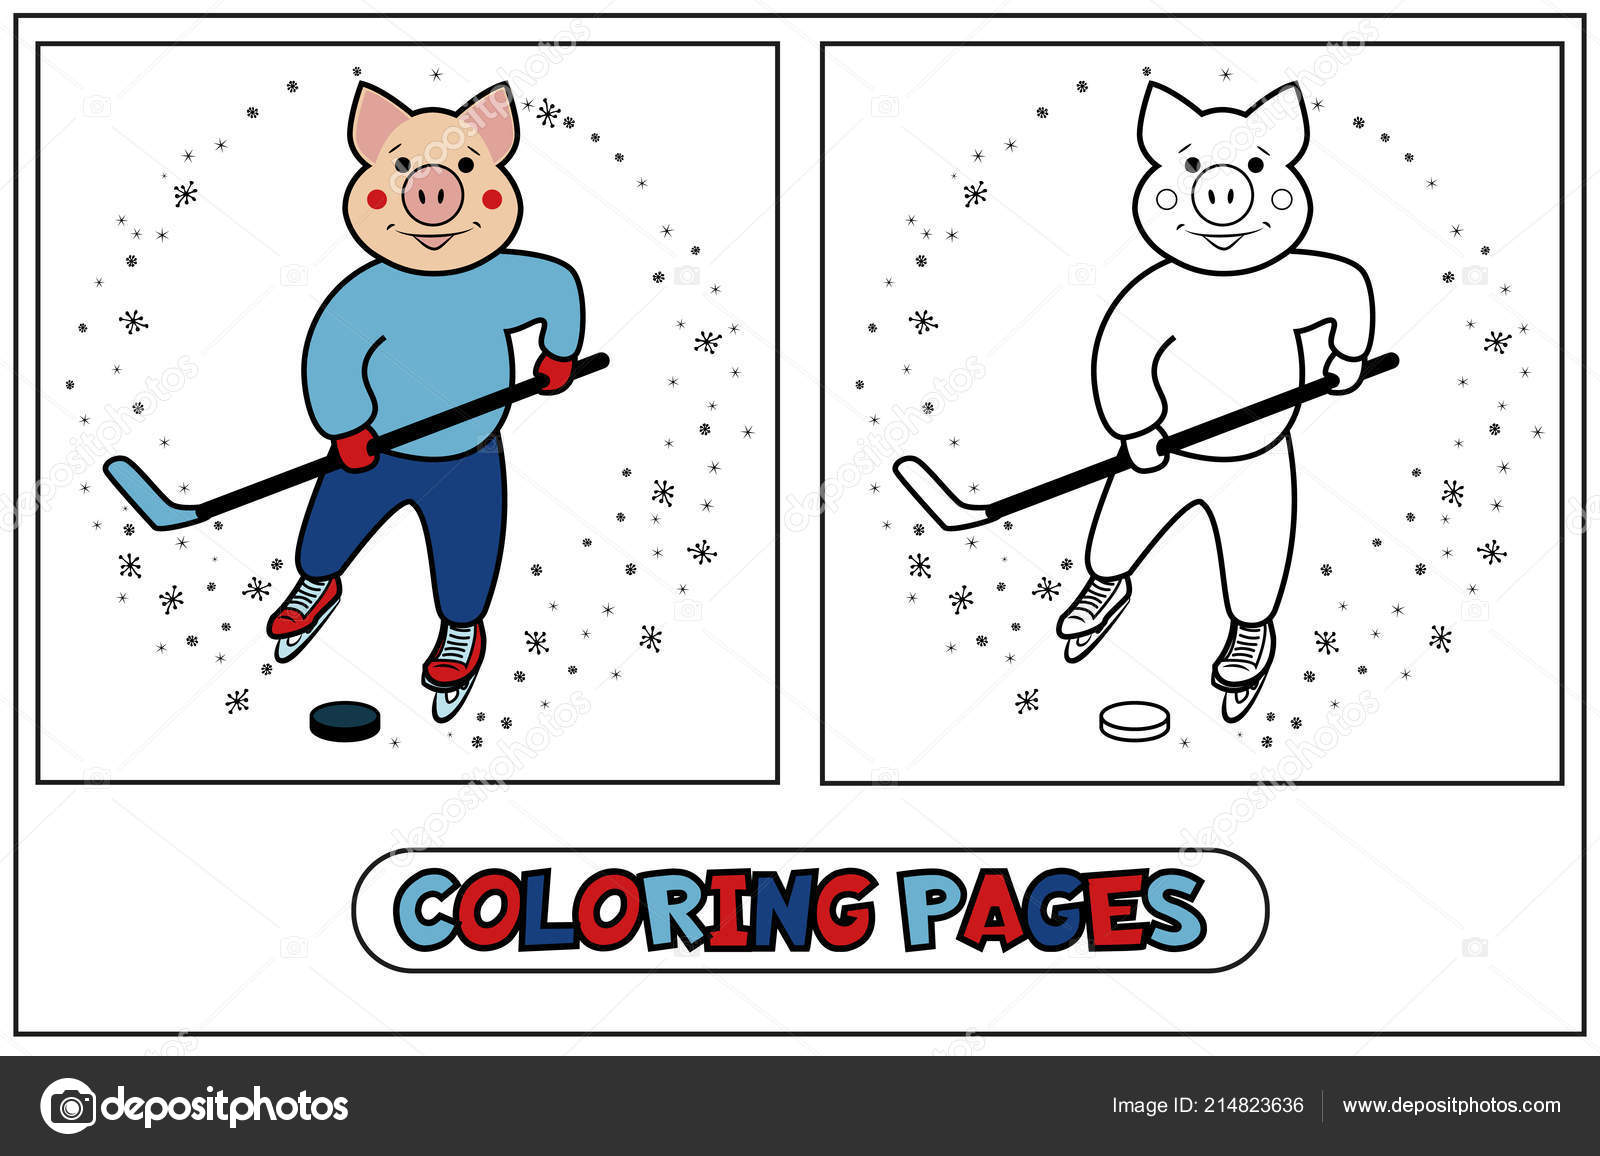 depositphotos stock illustration coloring piggy hockey player